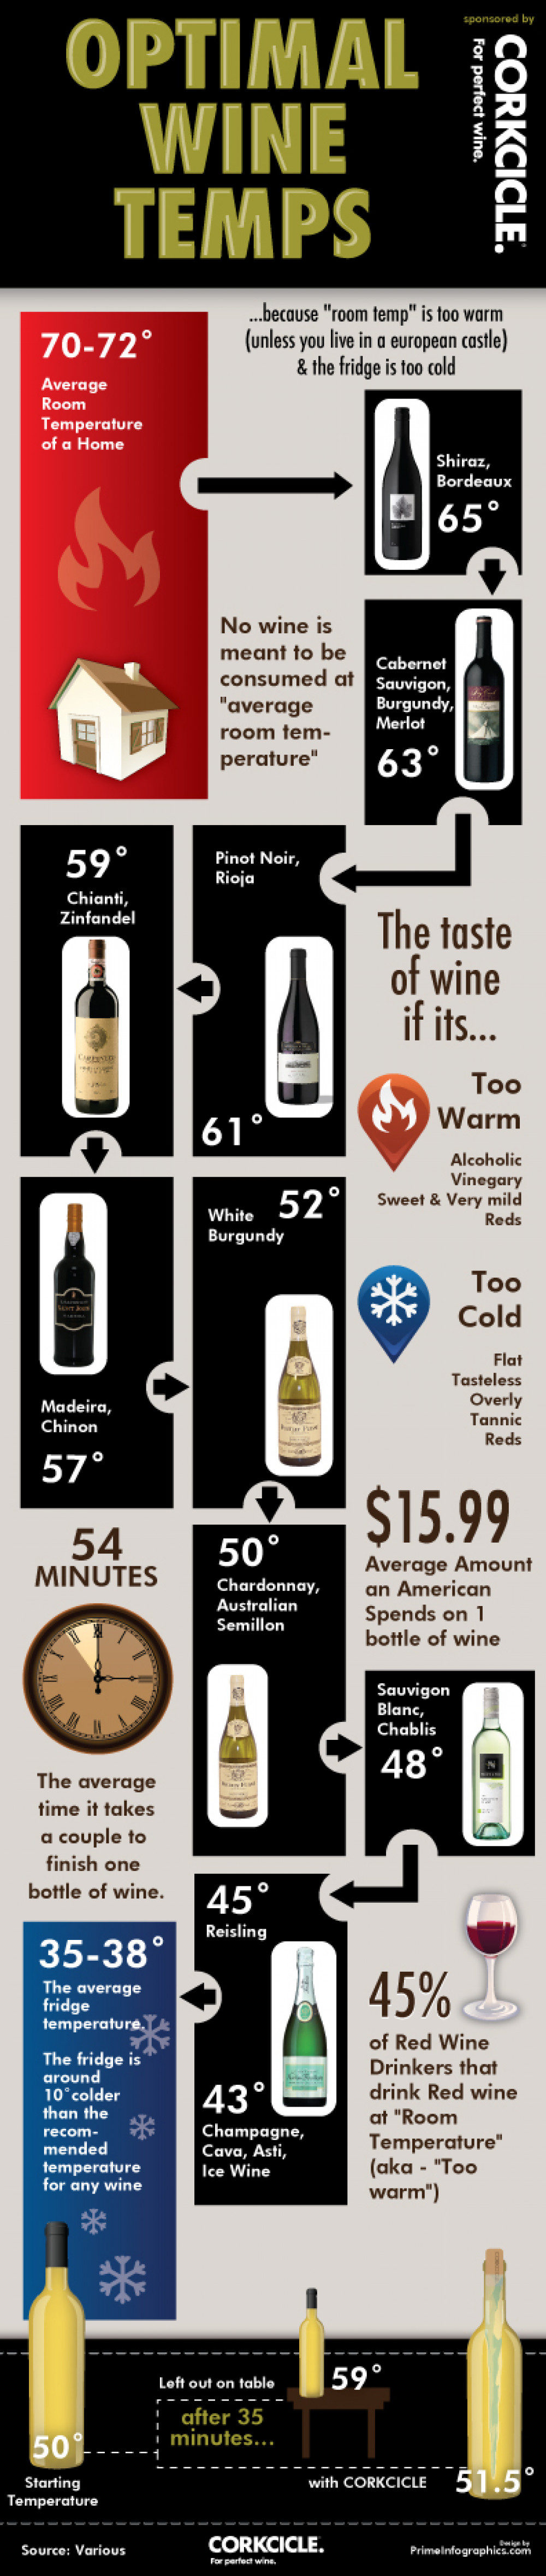 Optimal Wine Temps